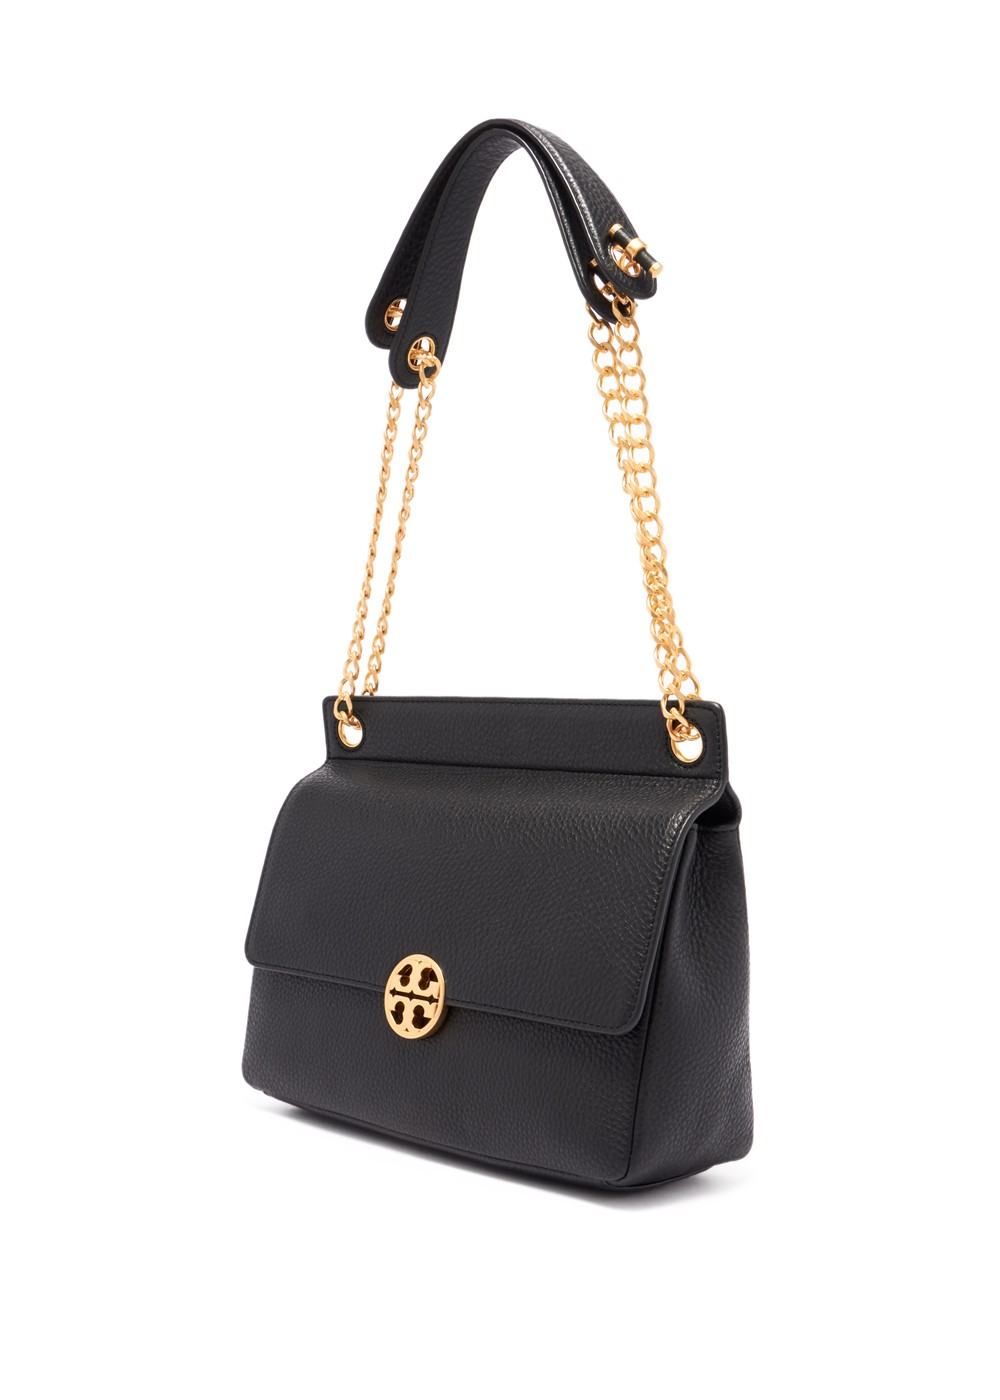 【最大42%OFF】CHELSEA FLAP SHOULDER BAG|BLACK|ショルダーバッグ|Tory Burch